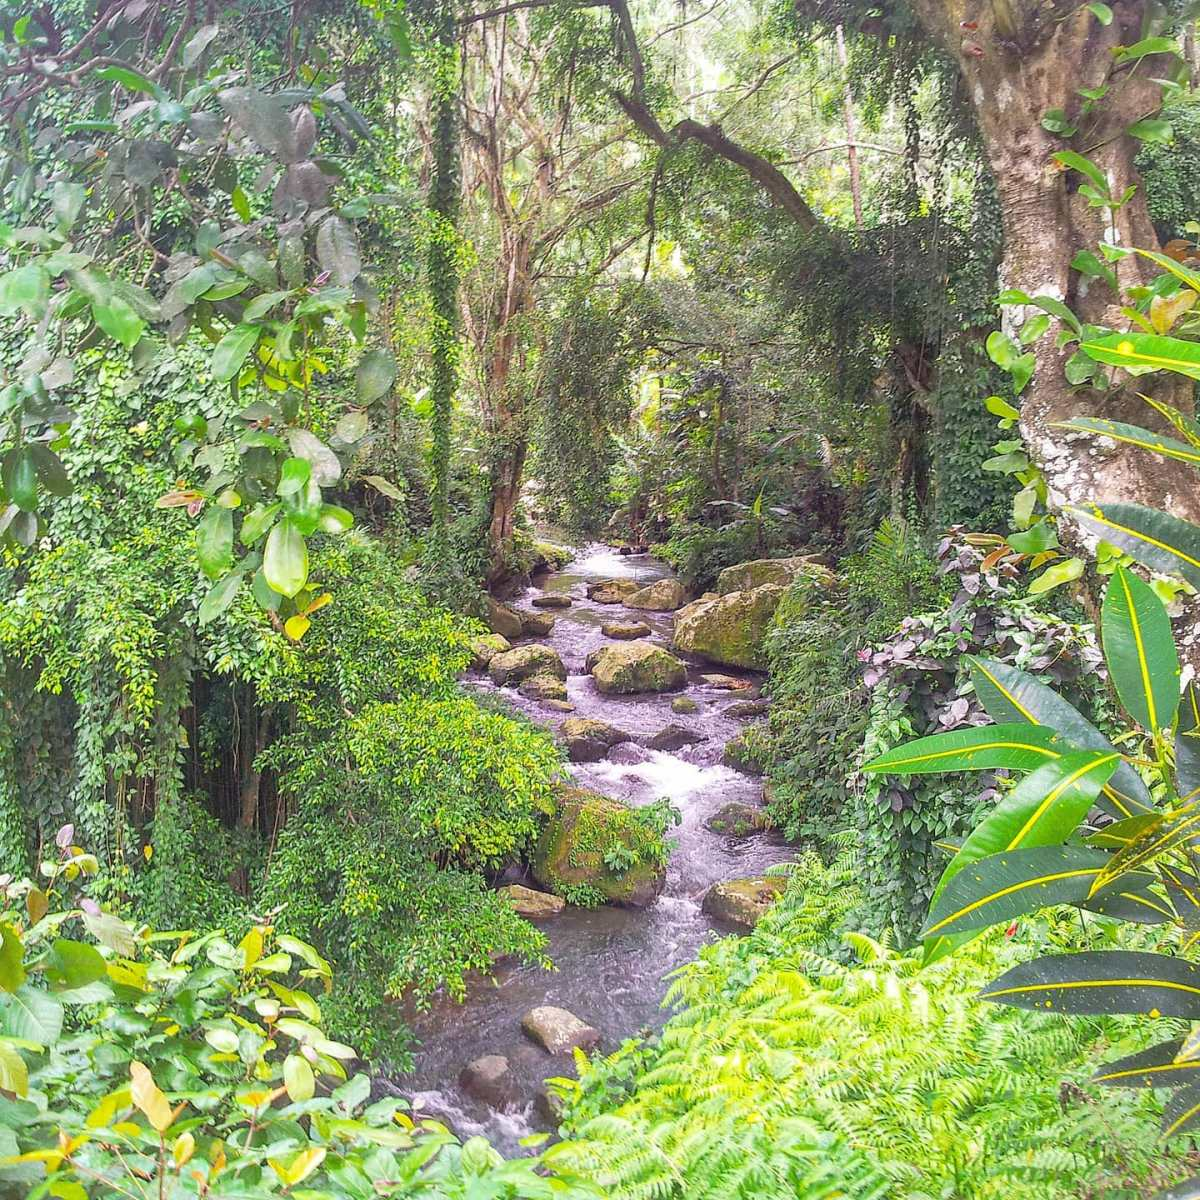 Listen the vibes of nature 🏞️🤙 Gunung Kawi, Bali 2013#indonesia #naturephotography #travellife #travelingram #nature #traveling #travelling #travelawesome #travel #travelgram #traveladdict #forest #travelers #bali #travelphoto #green #travelholic #river #travels #trees #travelstoke #travelmore #traveldeeper #travelpics #traveler #travellers #travelphotography #traveller